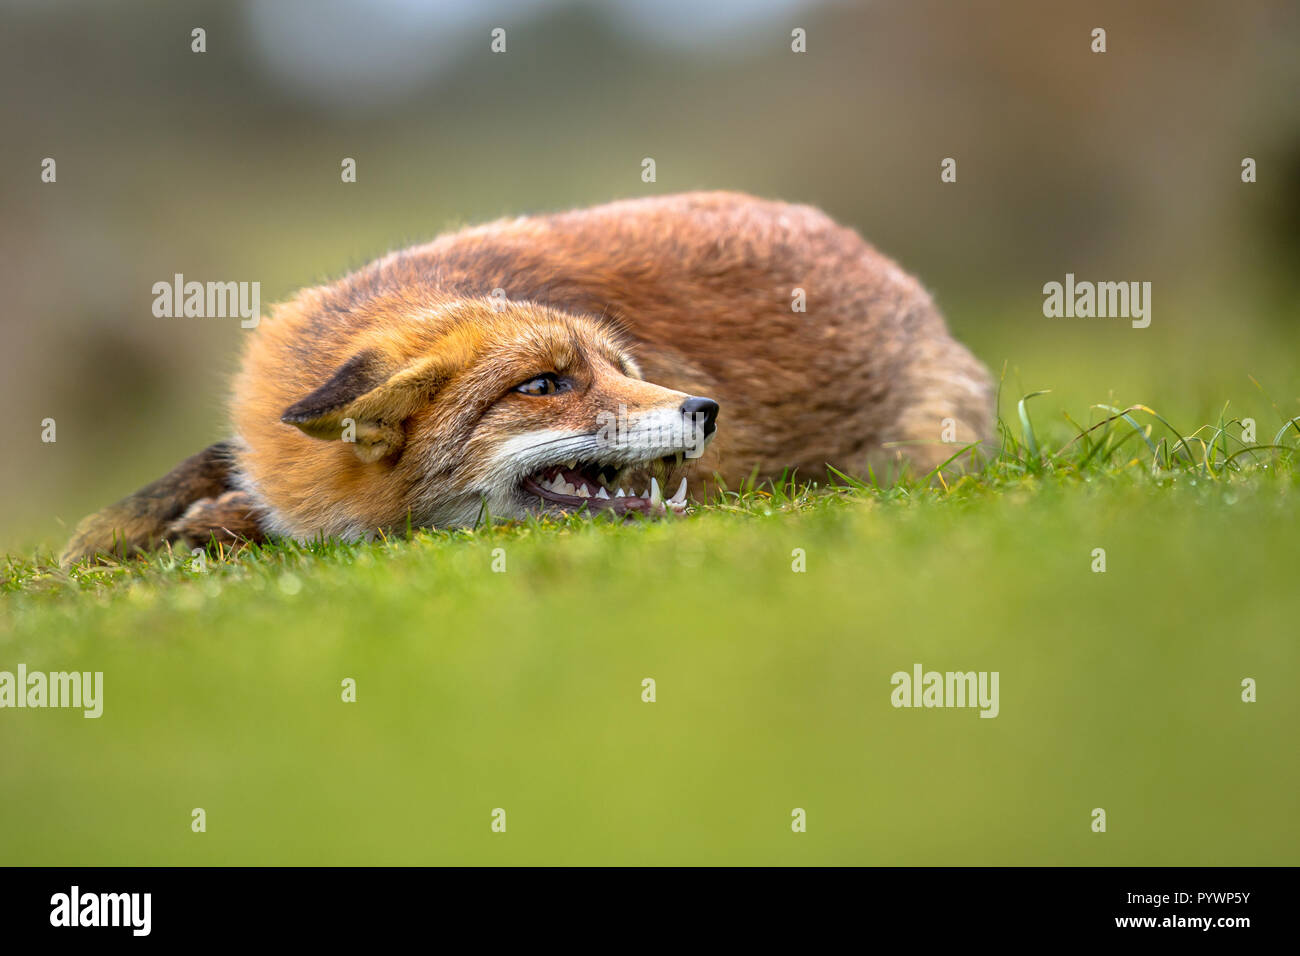 Growling European red fox (Vulpes vulpes) lying in grass. The most abundant wild member of the Carnivora, being present across the entire Northern Hem - Stock Image